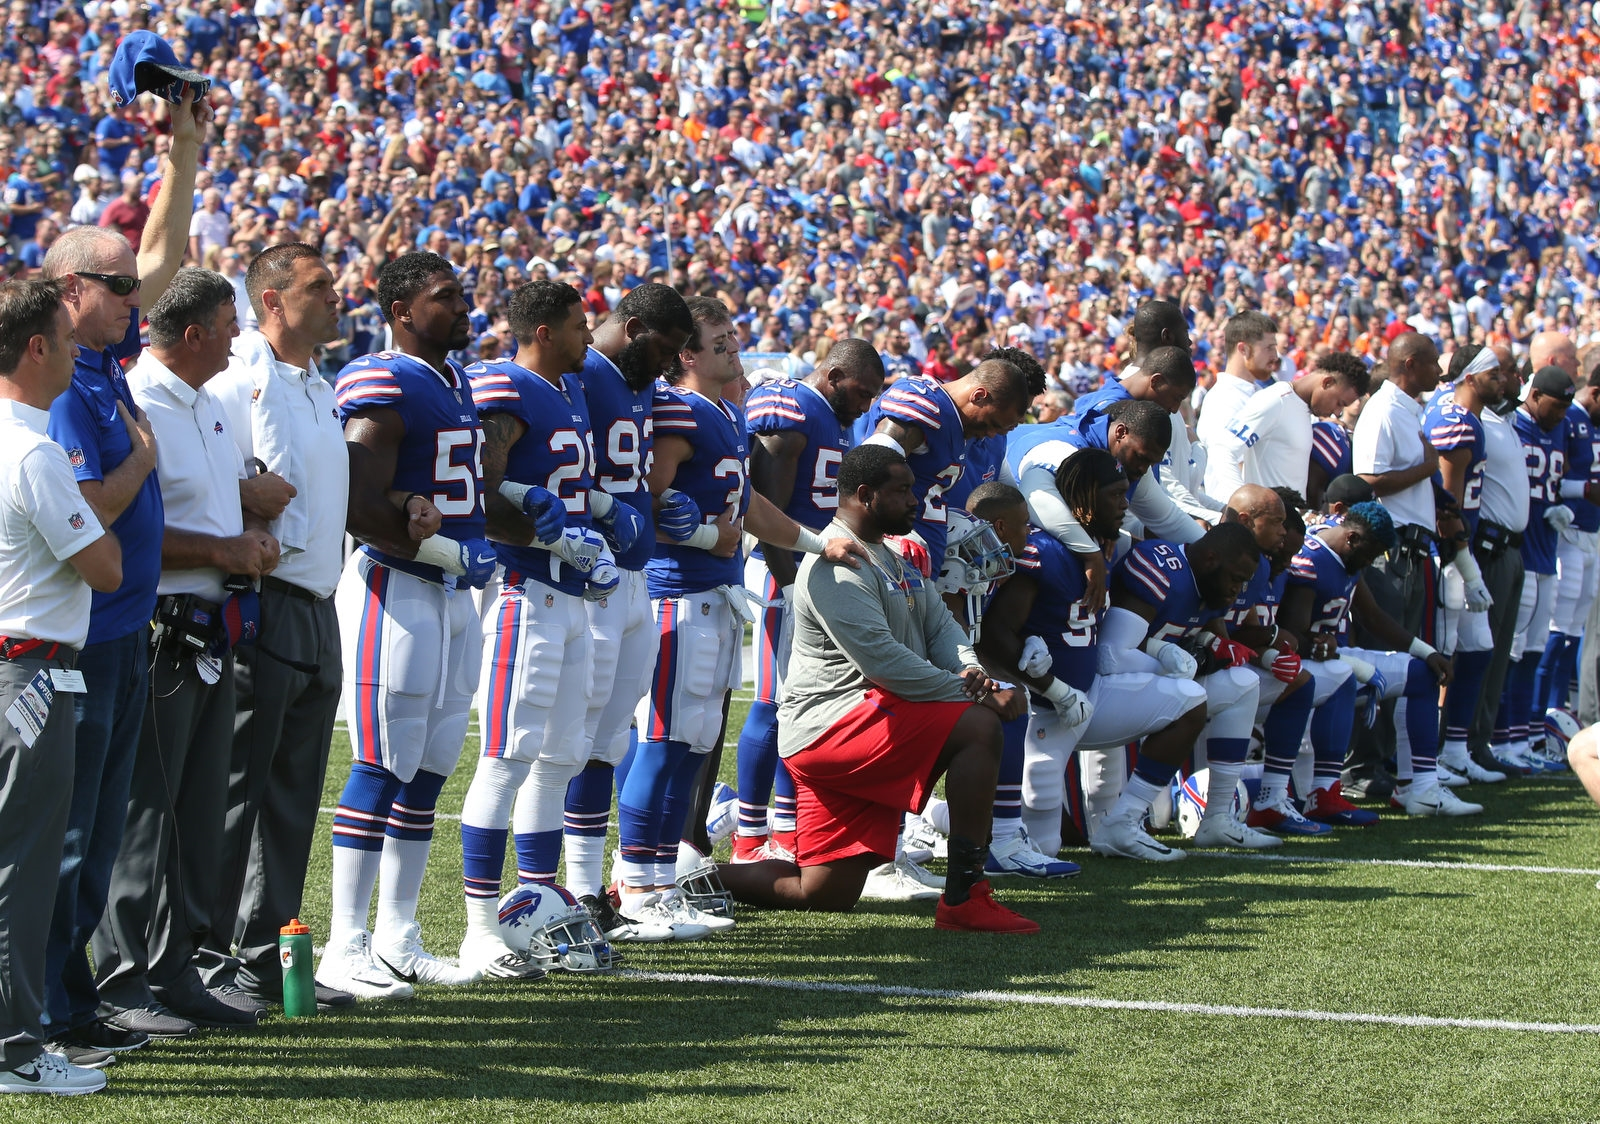 Bills Hall of Fame QB Jim Kelly raises his hand while several Buffalo Bills players take a knee during the national anthem before the start of the game against the Denver Broncos at New Era Field in Orchard Park on Sunday, Sept. 24, 2017.